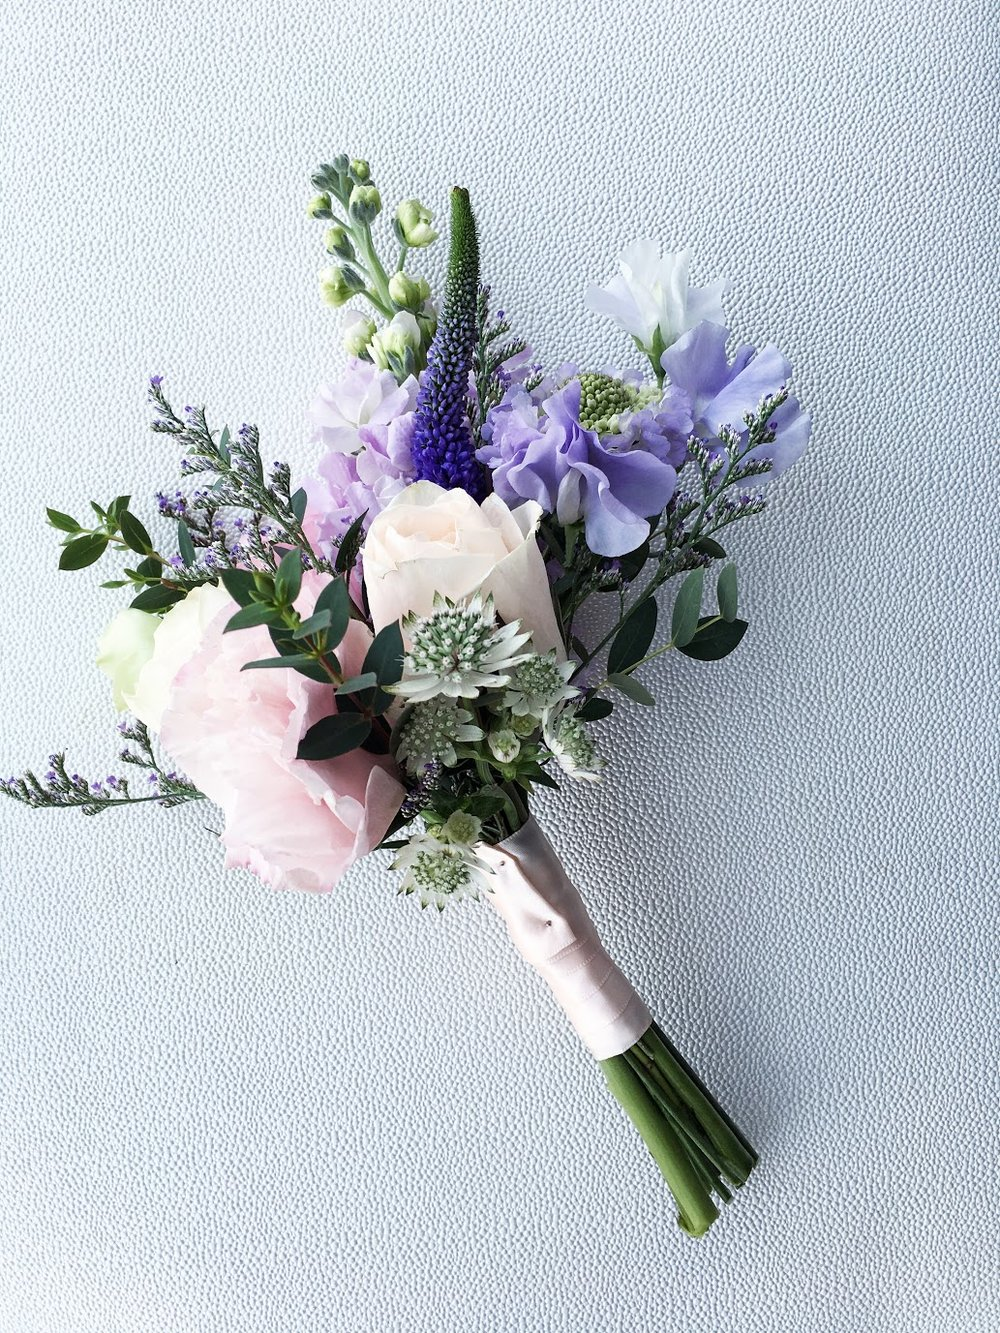 Bridesmaids Posies comprises of sweet pea, roses, astrantia, veronica, matthiola, caspia purple to name a few. Simple with a touch of sweetness to accompany the bride's bouquet.